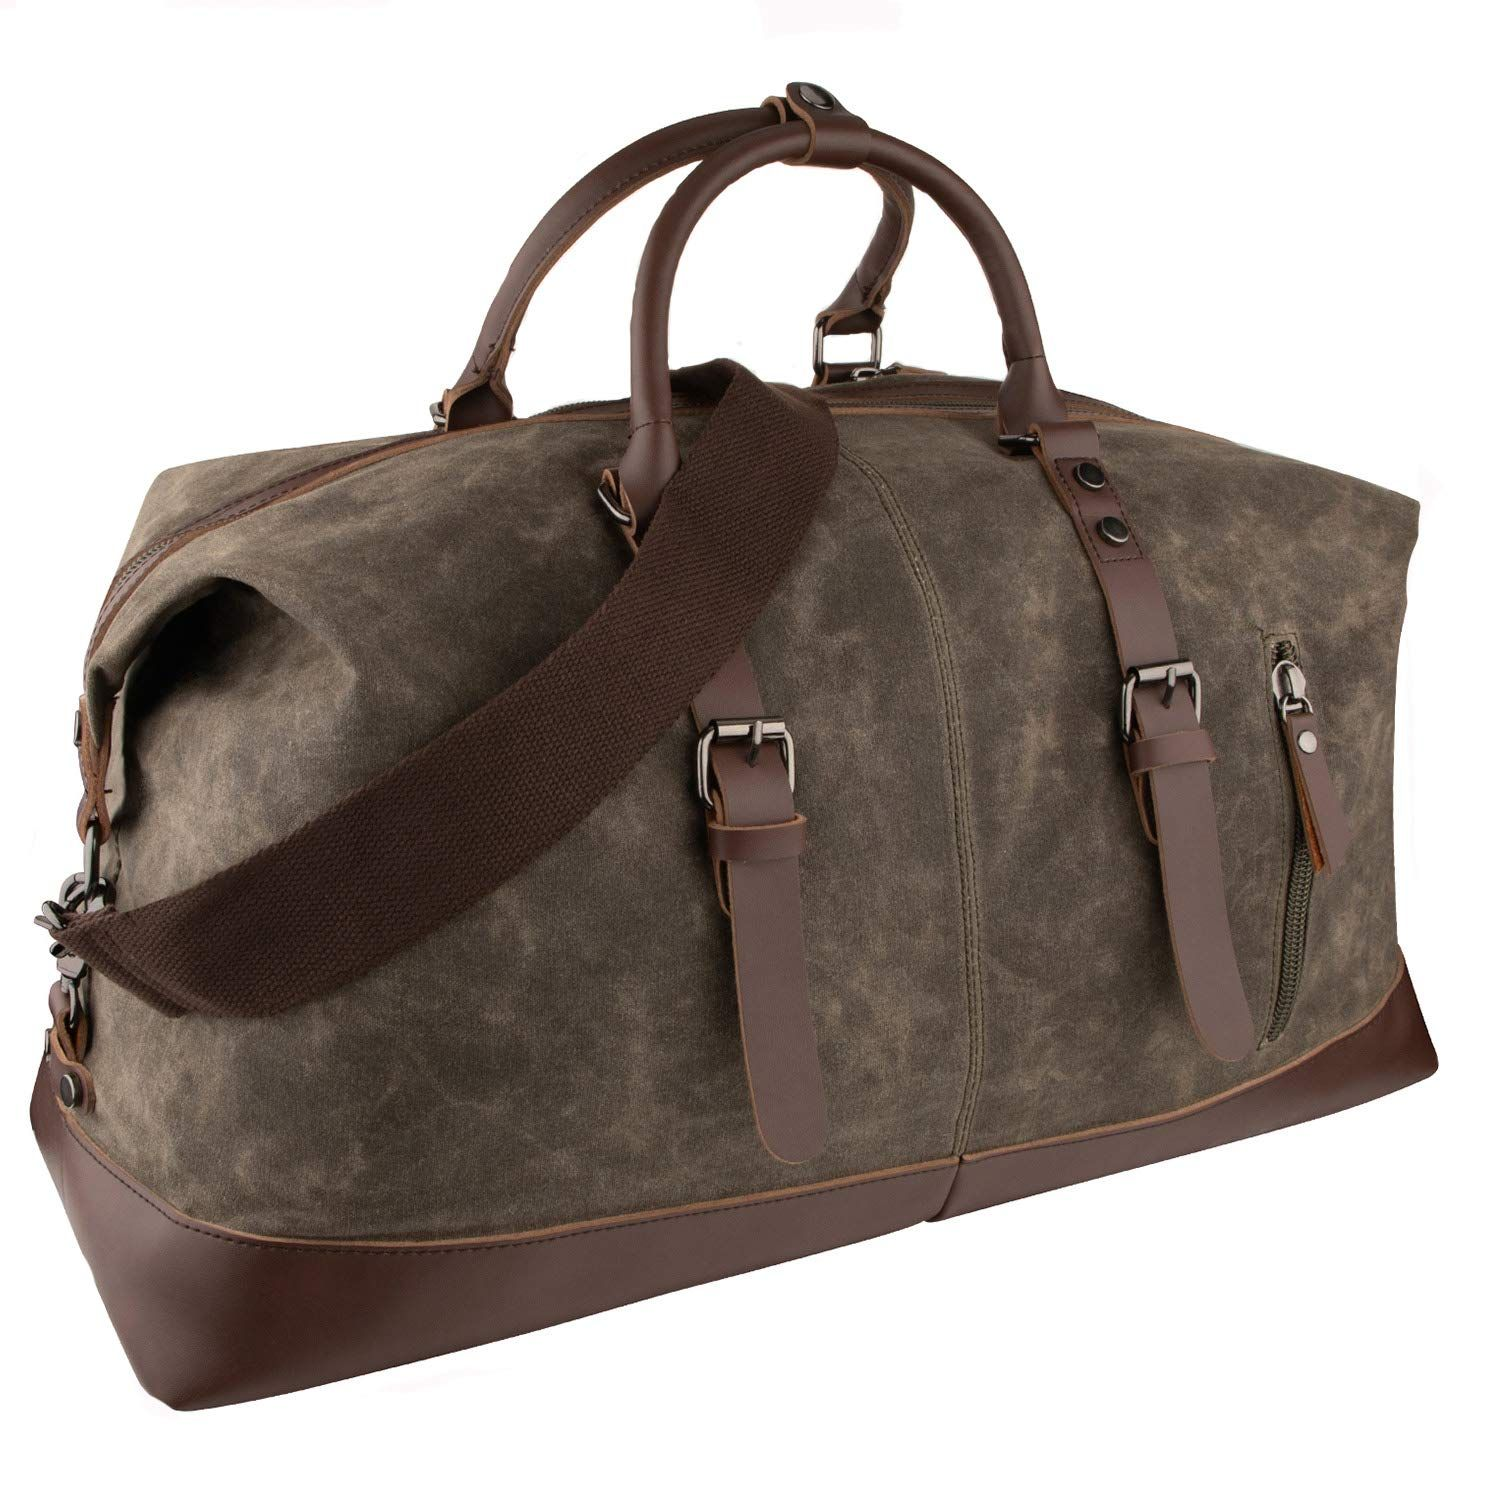 Large Weekend Travel Bag Portable Holdall Duffle For